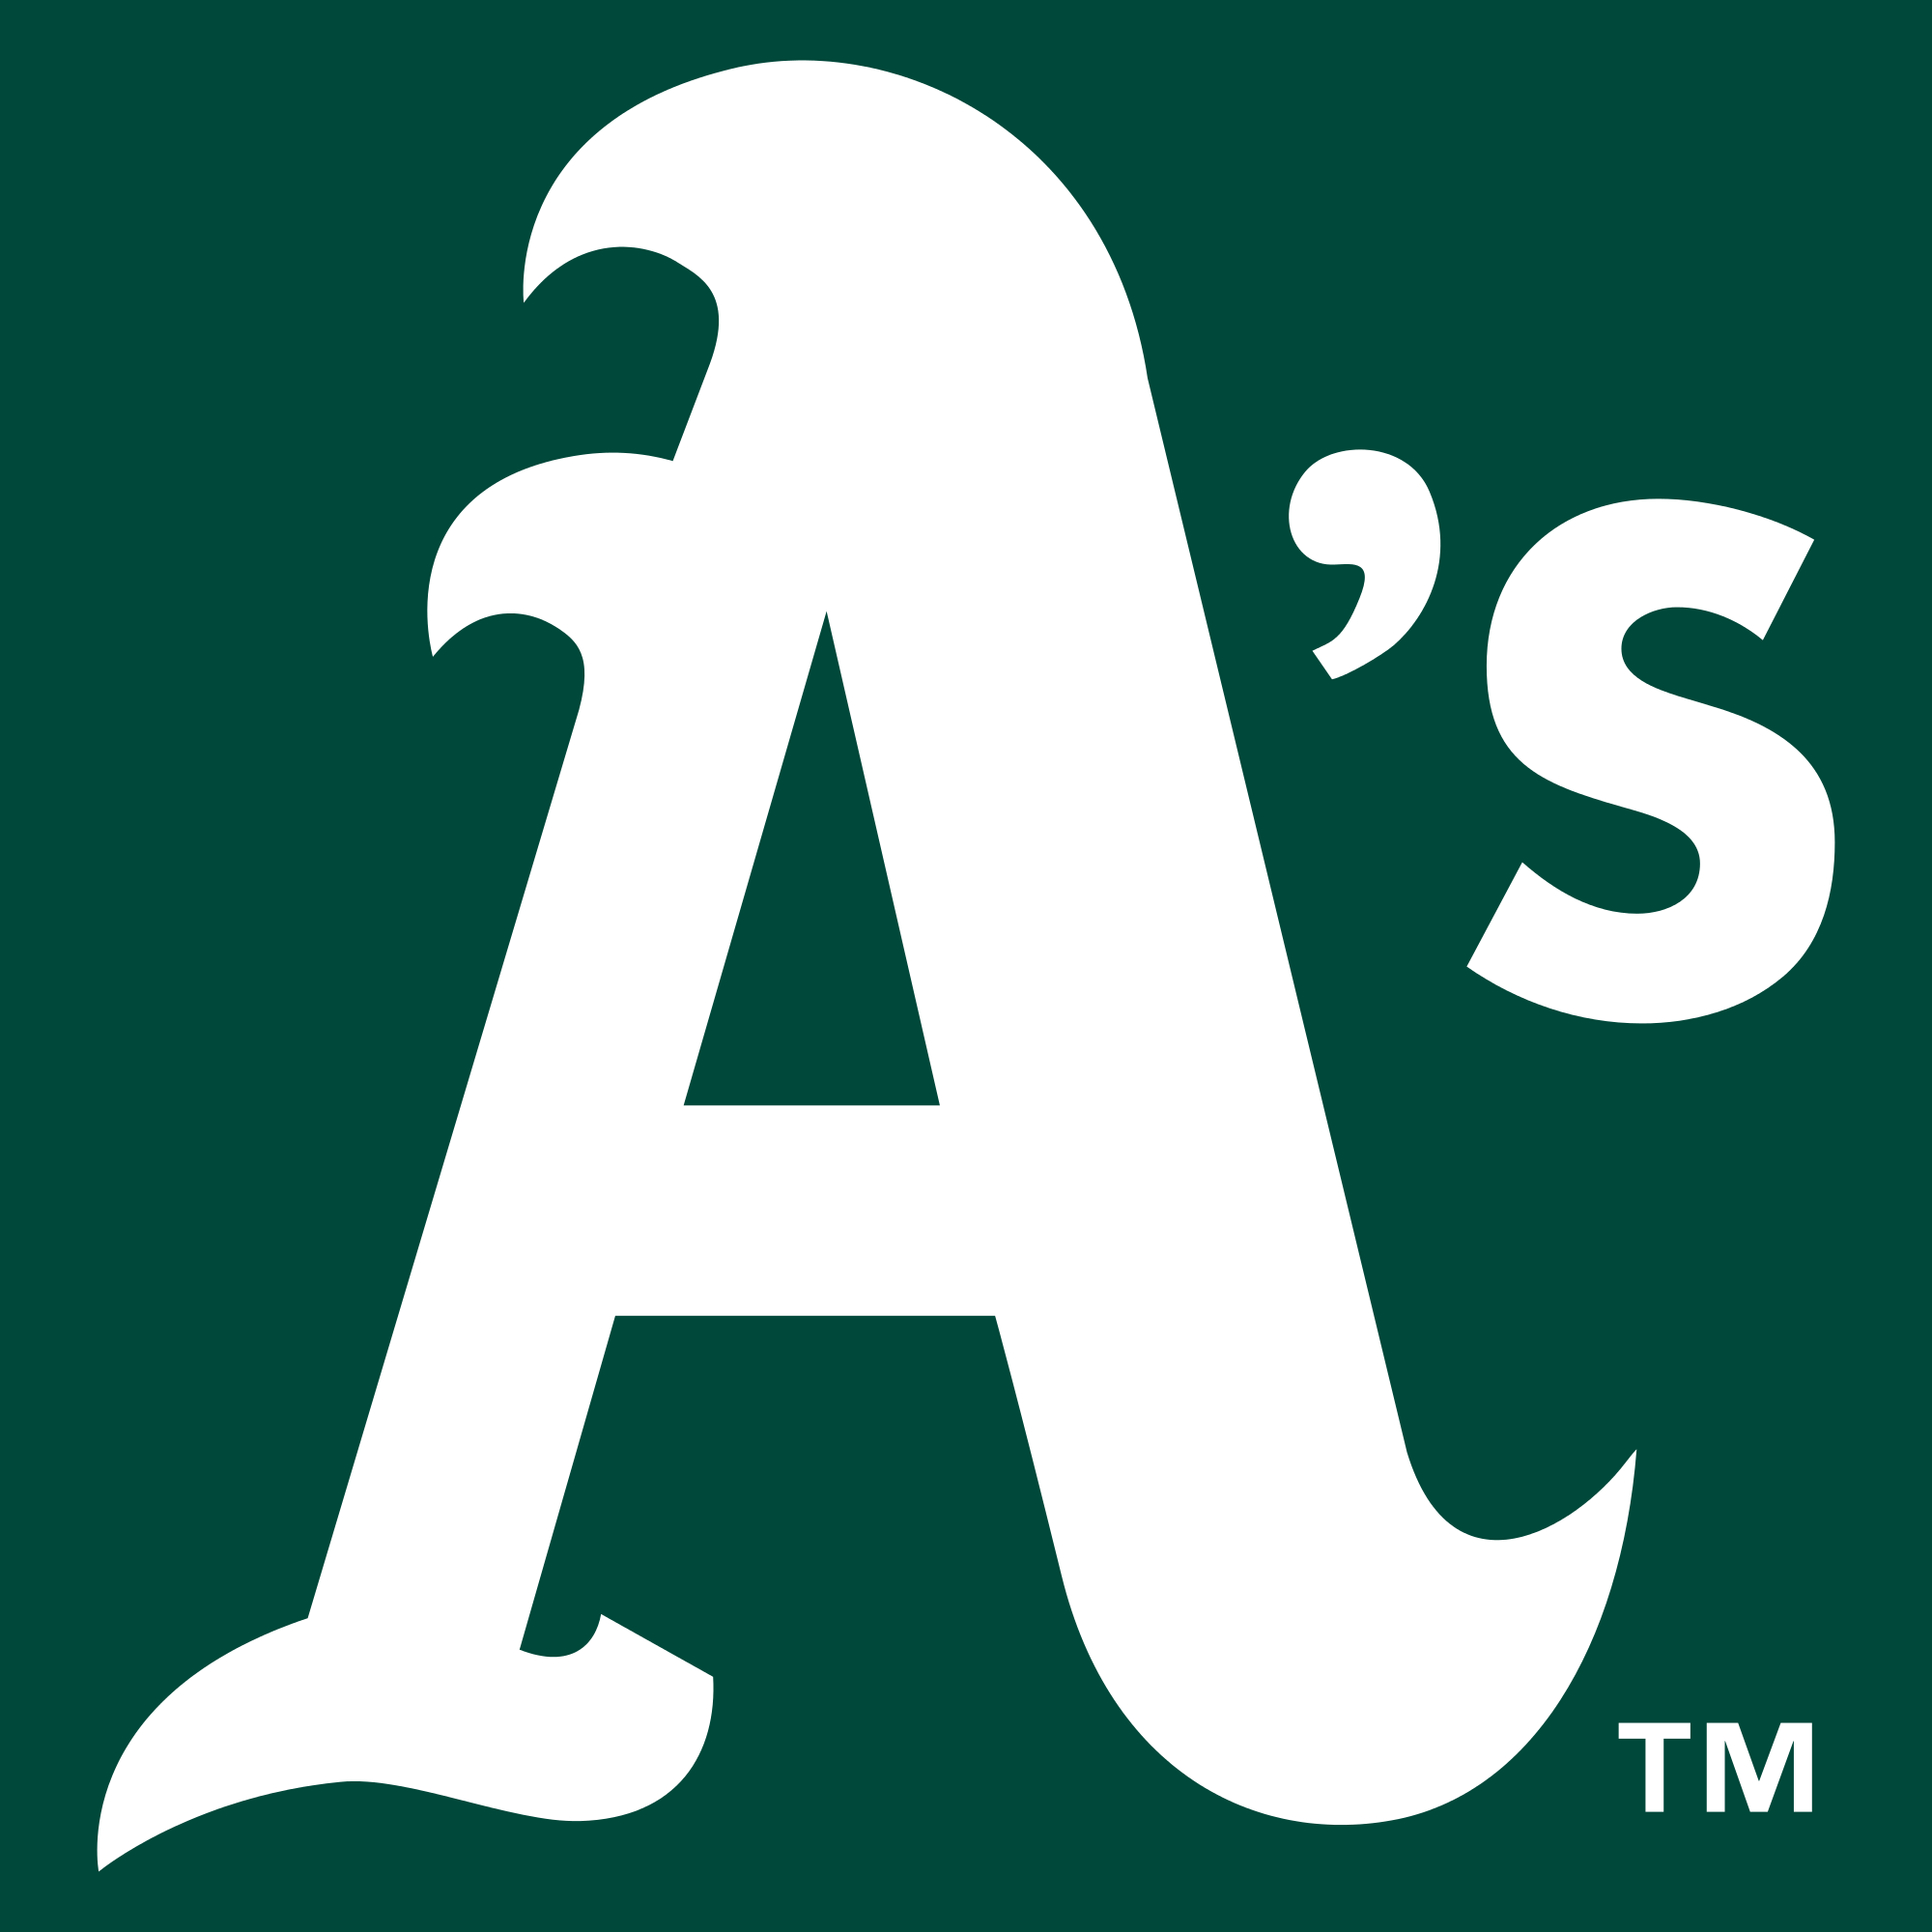 Programme TV Oakland Athletics